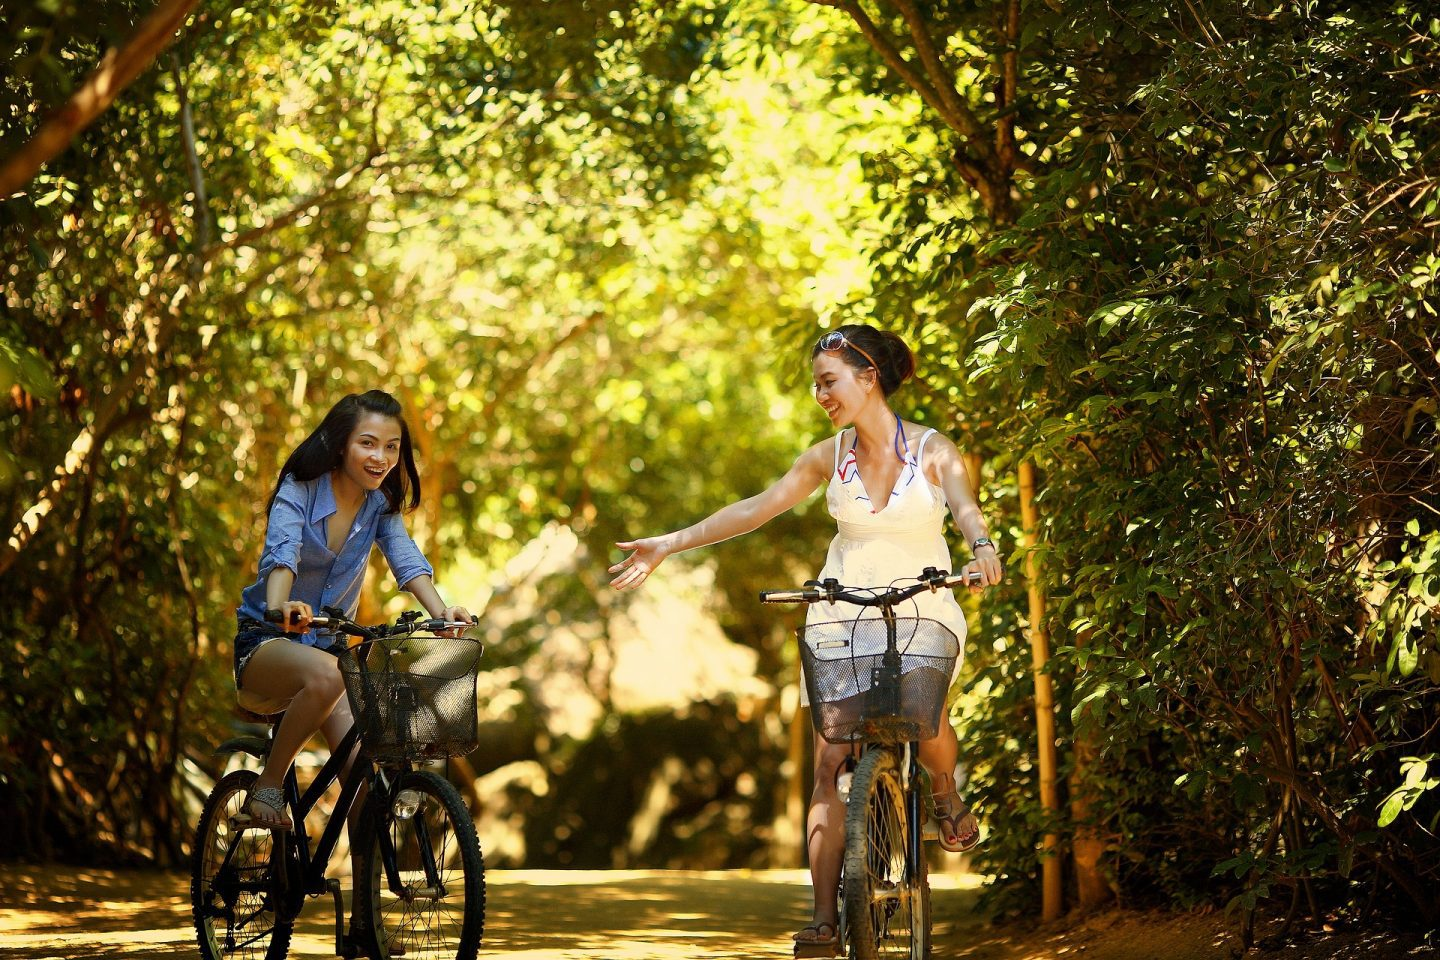 2 girls riding bicycles through the woods. The girl on the right is reaching towards the girl on the left